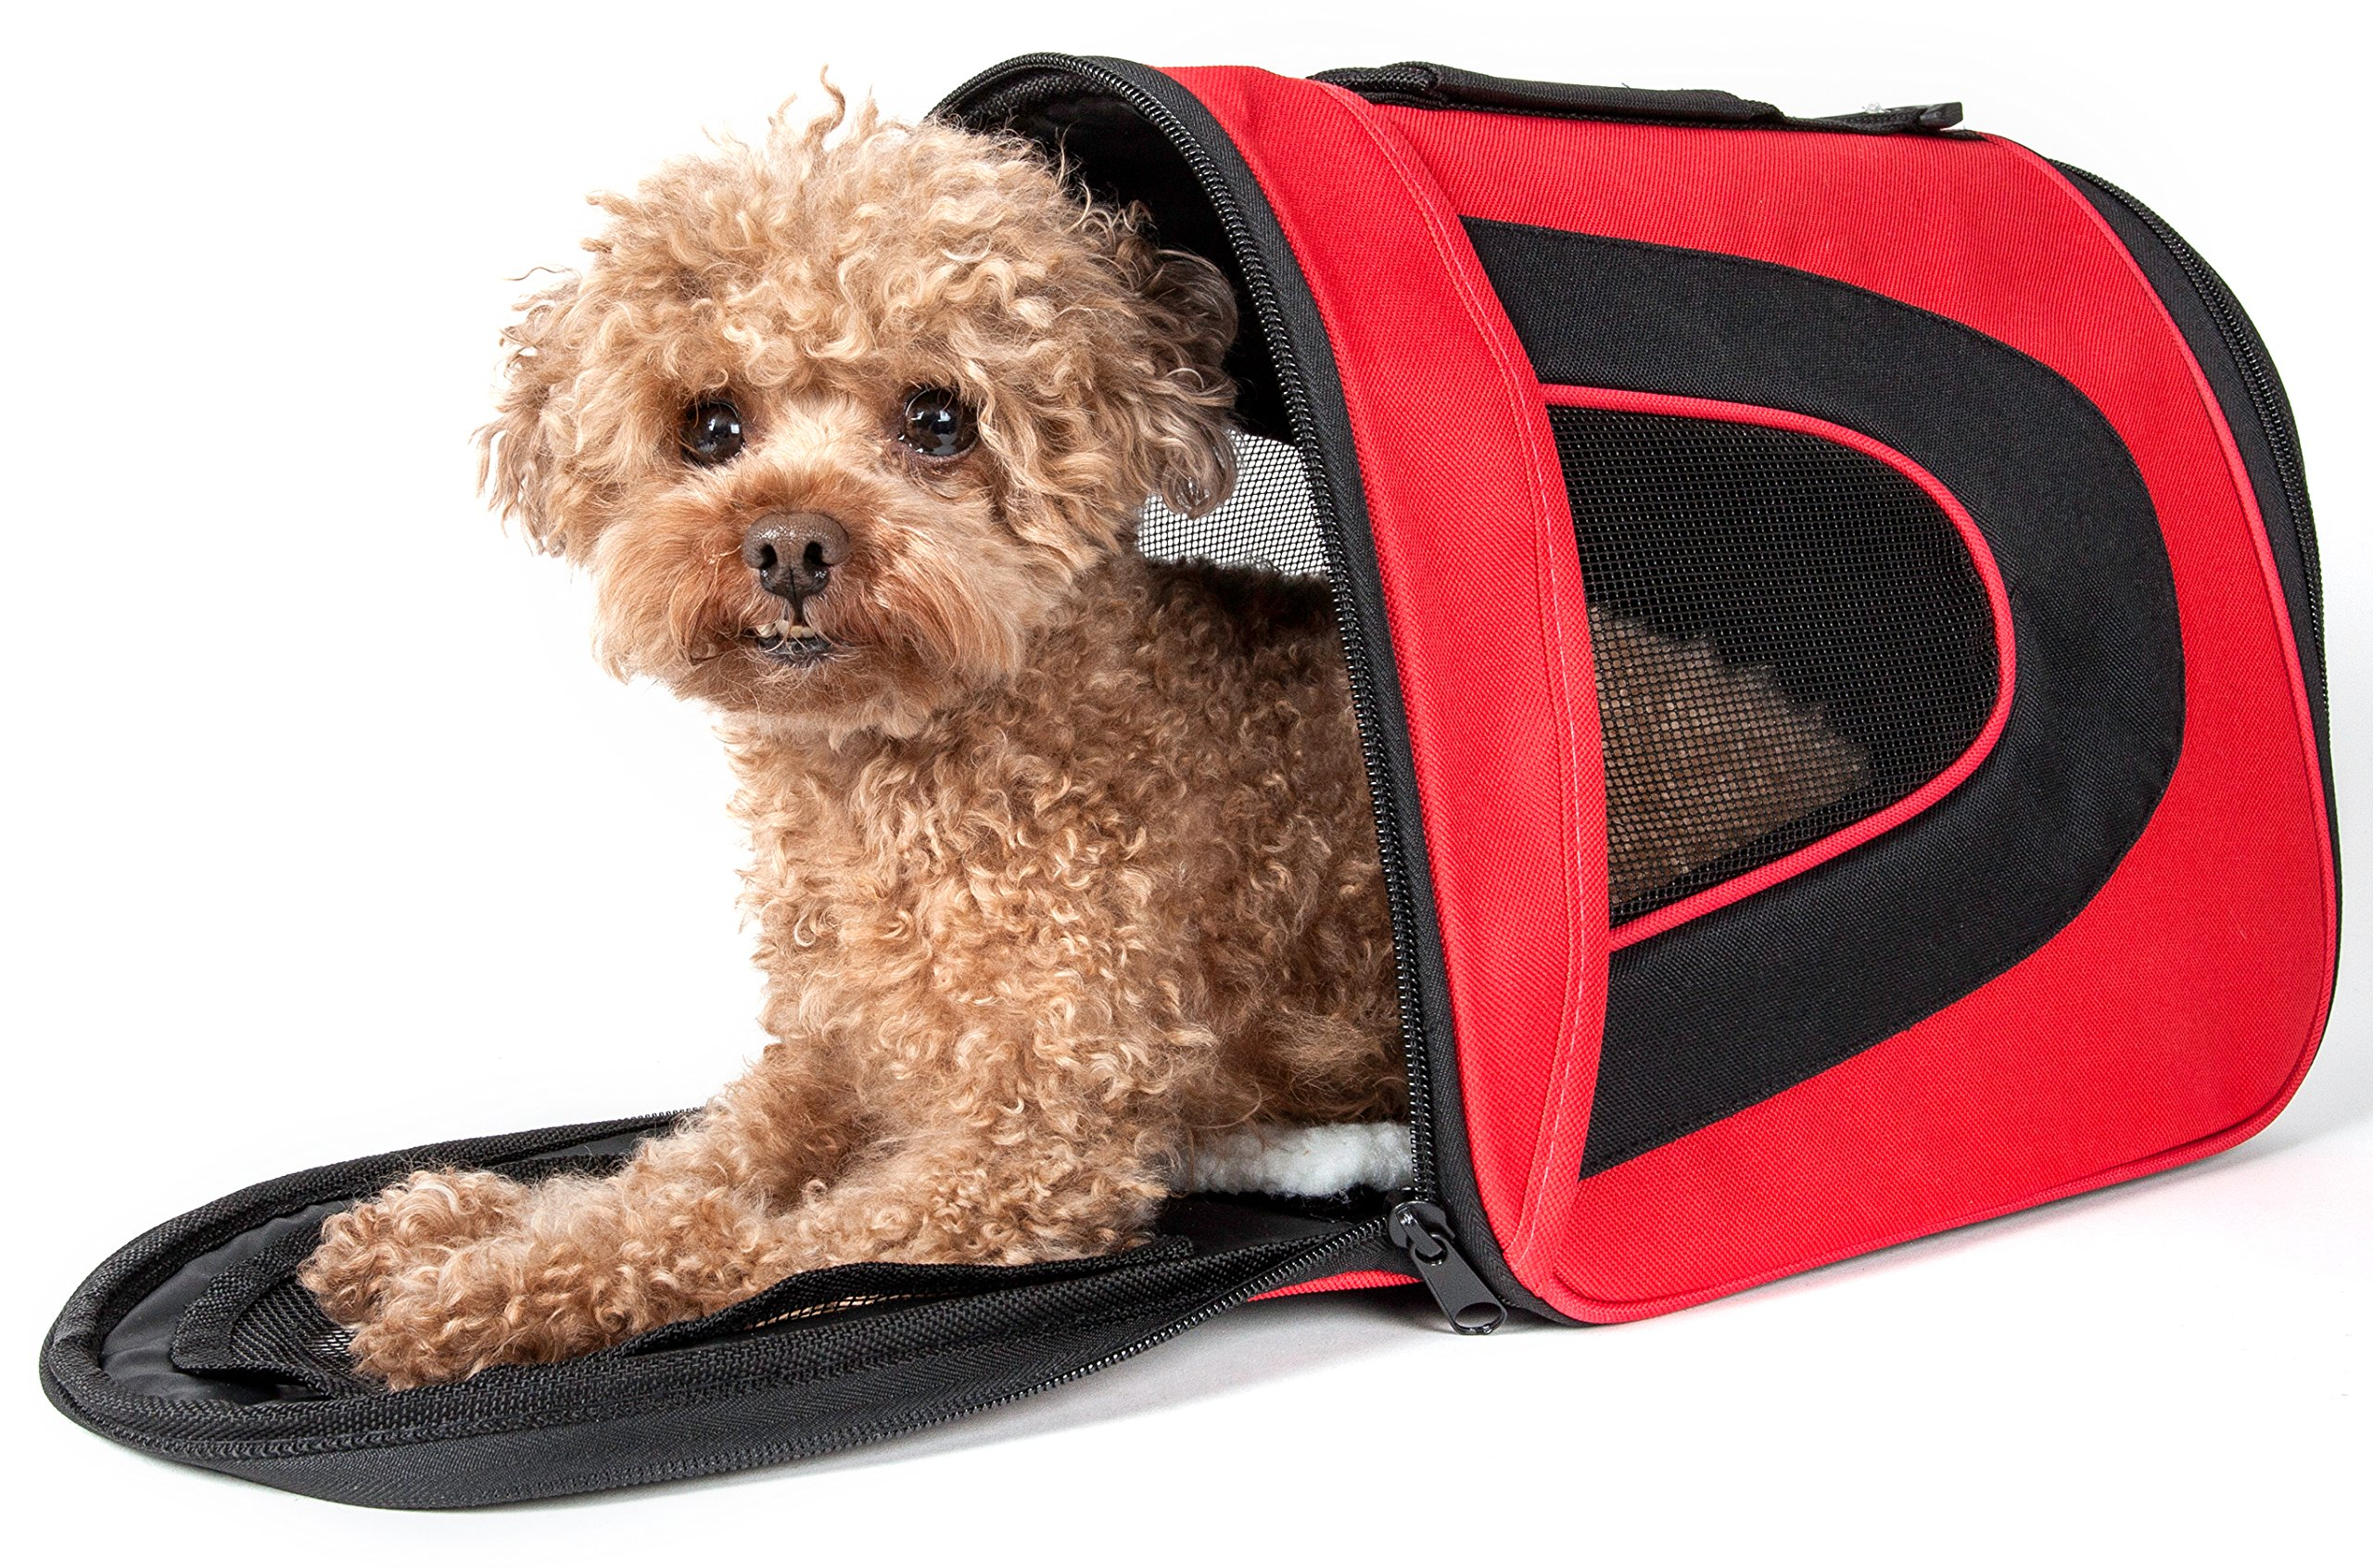 PET LIFE Airline Approved Collapsible Zippered Folding Sporty Mesh Travel Fashion Pet Dog Carrier Crate, Large, Red & Black